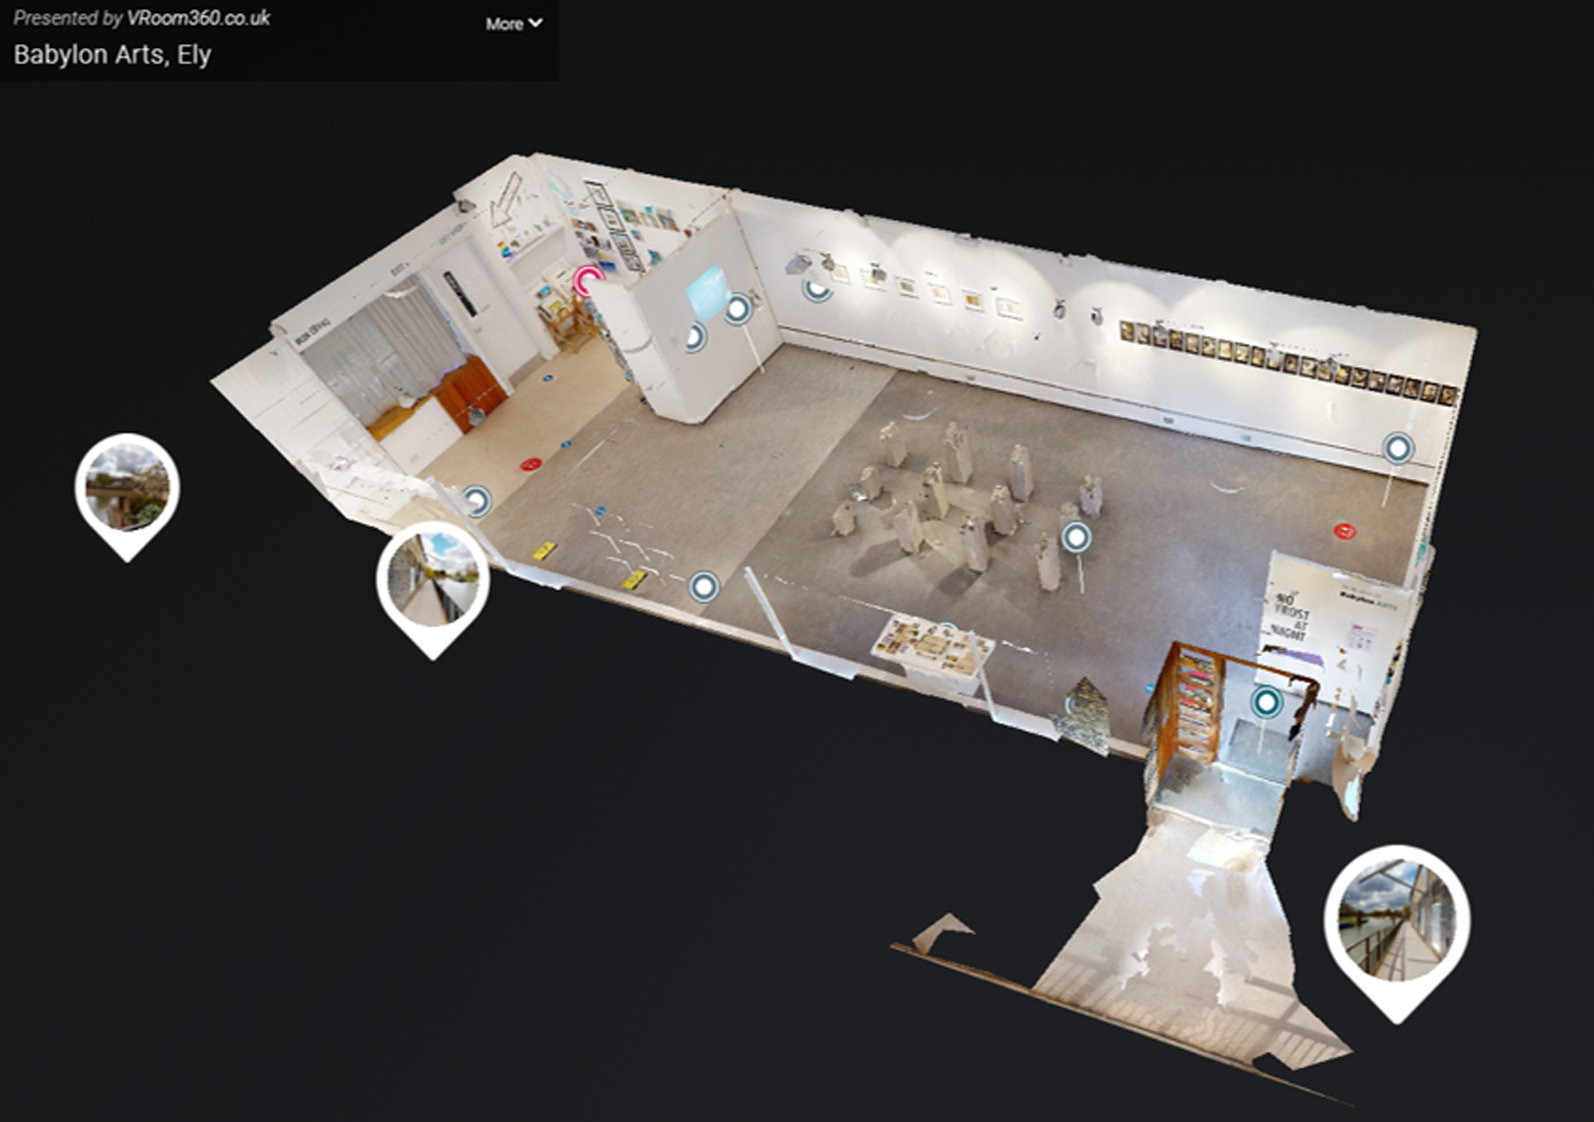 screen shot of exhibition virtual tour